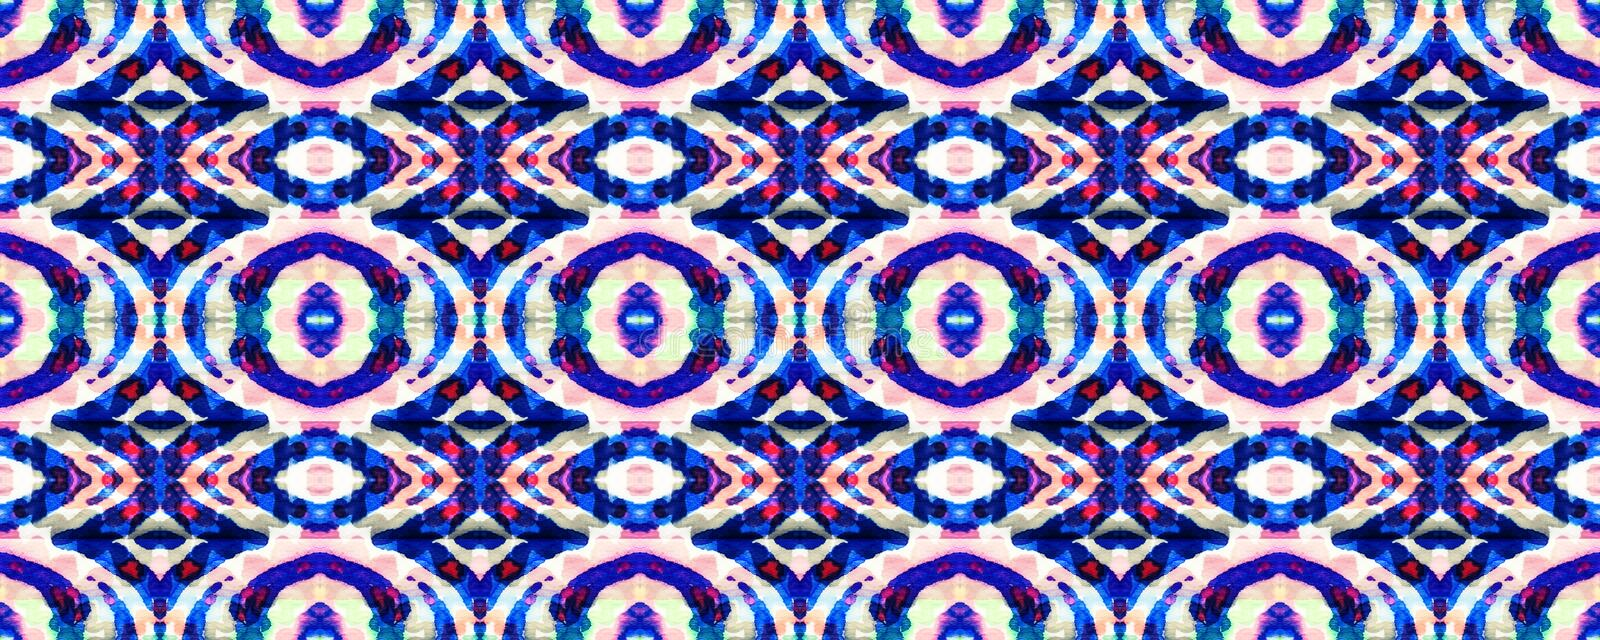 Ikat Seamless Pattern. Ogee Seamless Texture. Ikat Pattern. Aztec Geometric Textile Border Psychedelic Rainbow Watercolor Hand Drawn Textile. Creative Navajo royalty free illustration